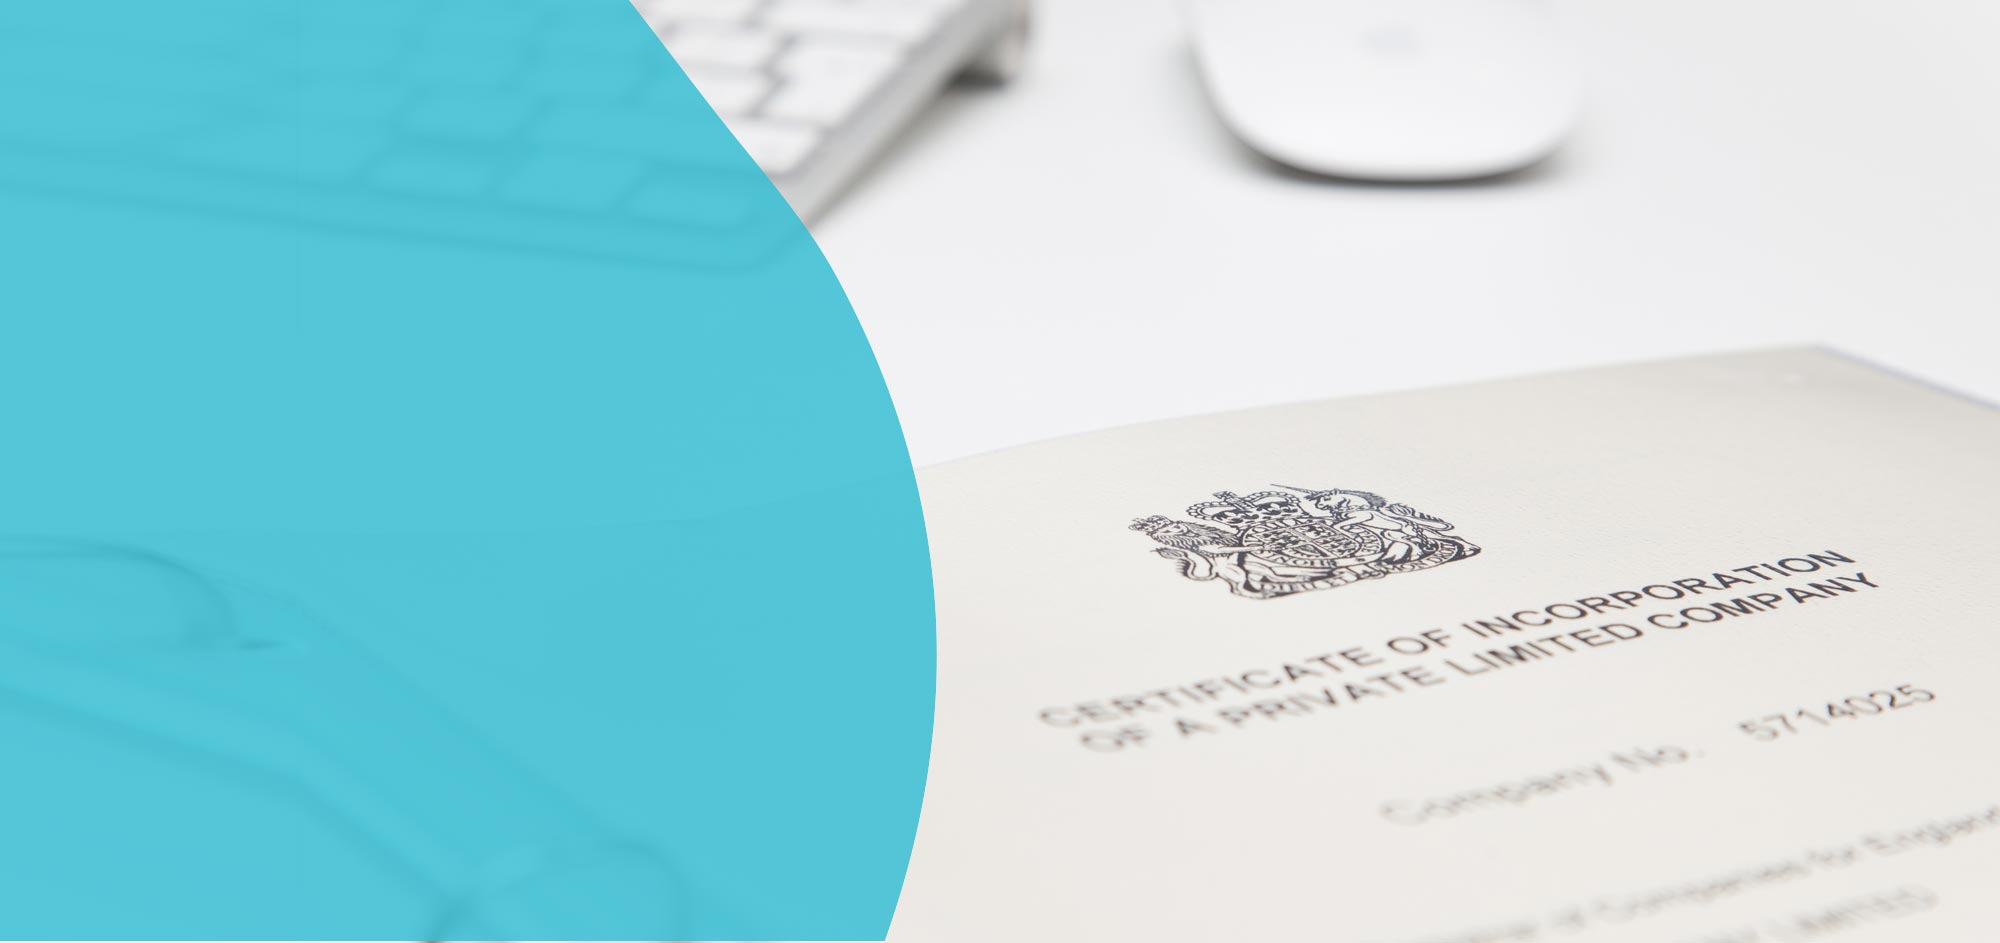 A close up image of a certificate of incorporation of a private limited company